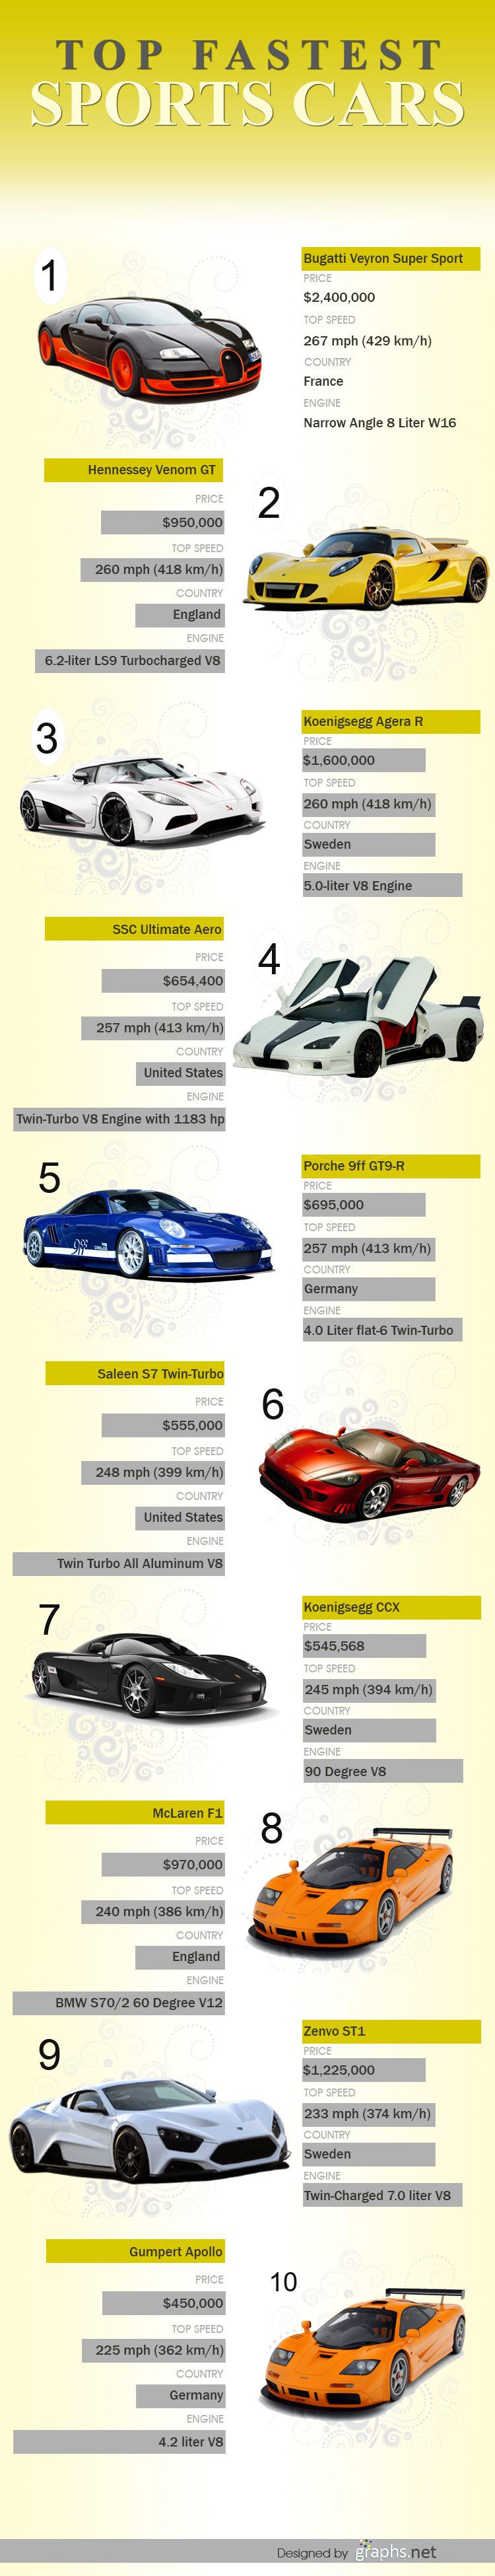 Top 10 Fastest Sports Cars